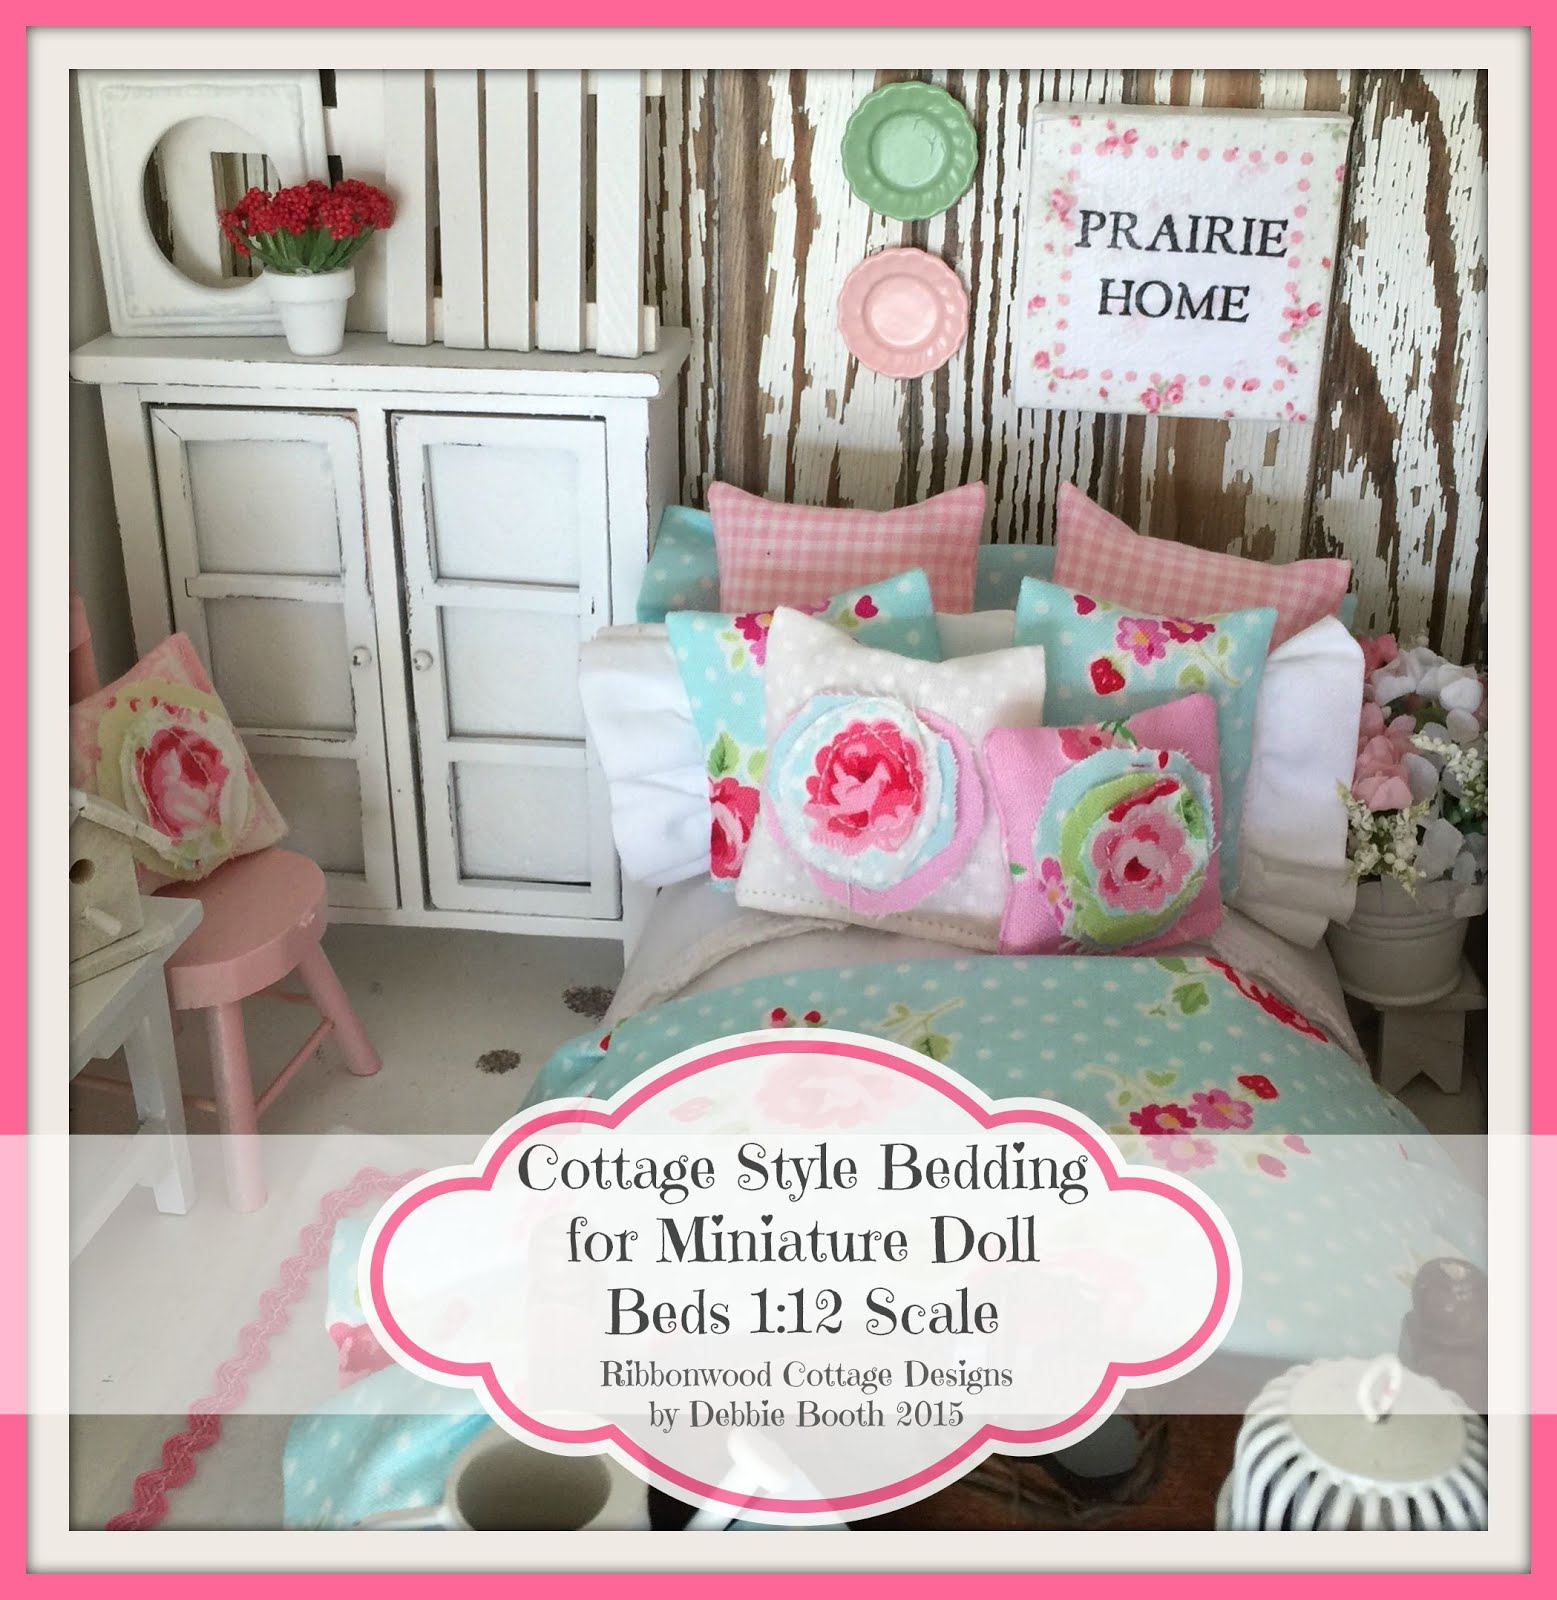 Cottage Style Bedding PDF Pattern Ebook for Miniature Dollhouse Beds 42 Colored Pages